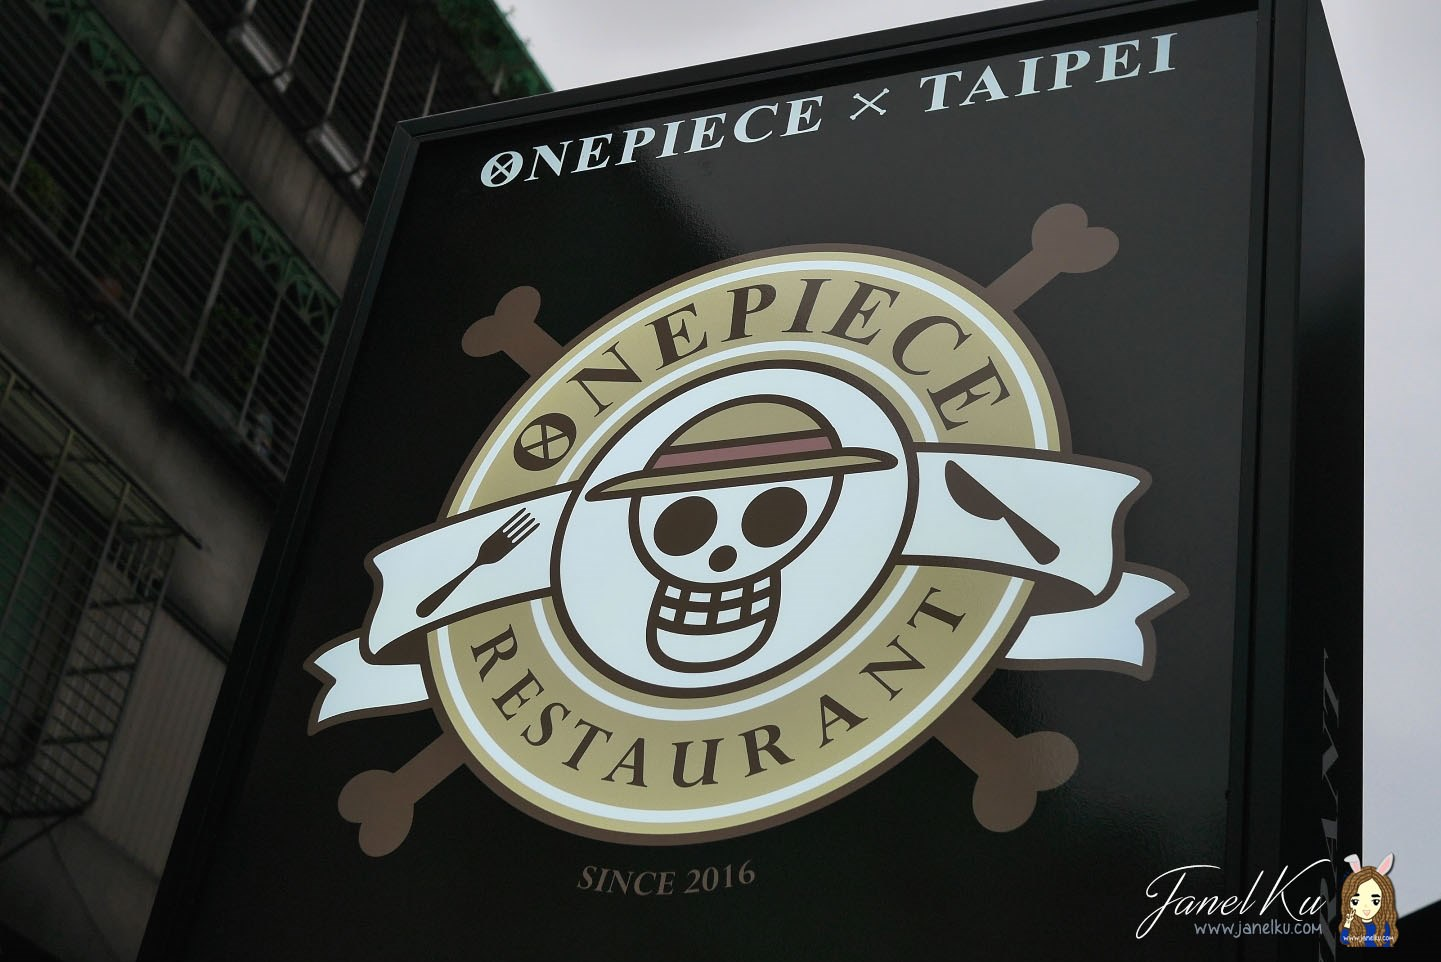 One Piece Restaurant opens in Taipei!